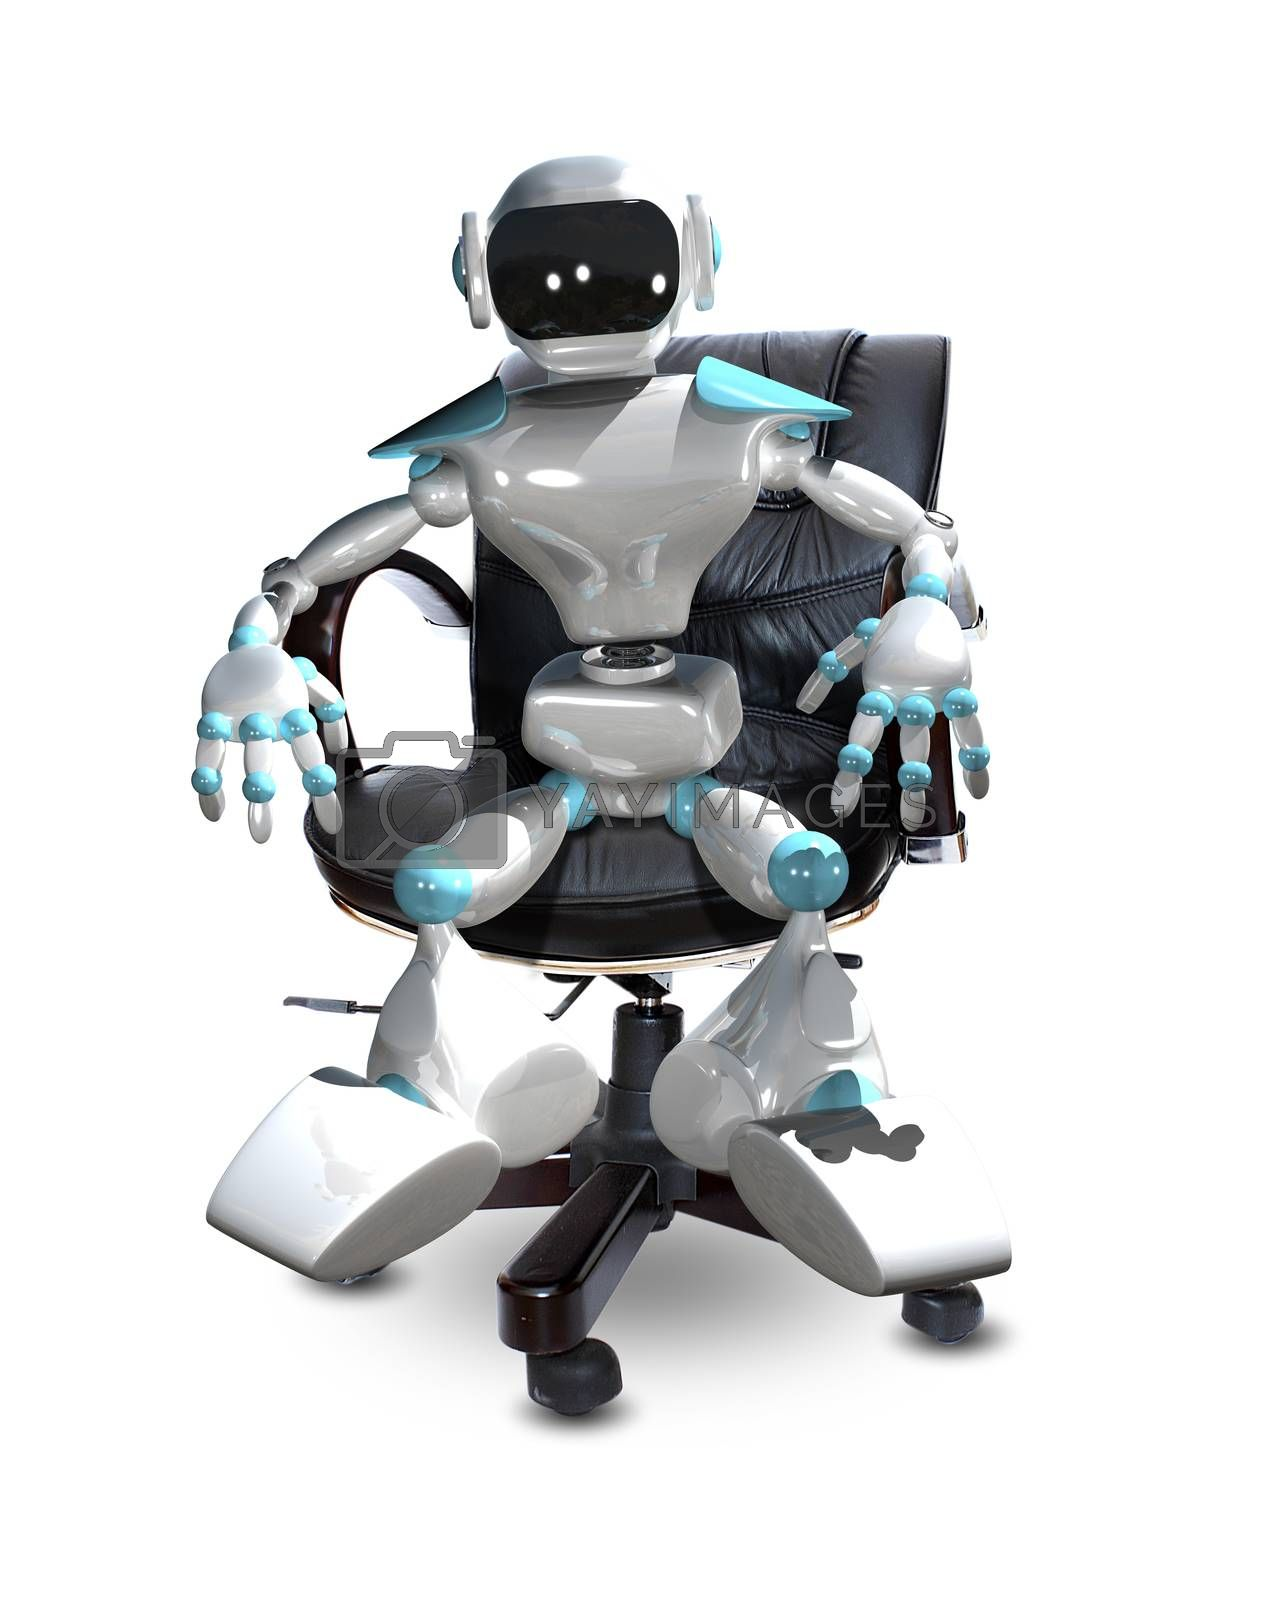 3D Illustration of a Robot in a Chair by brux